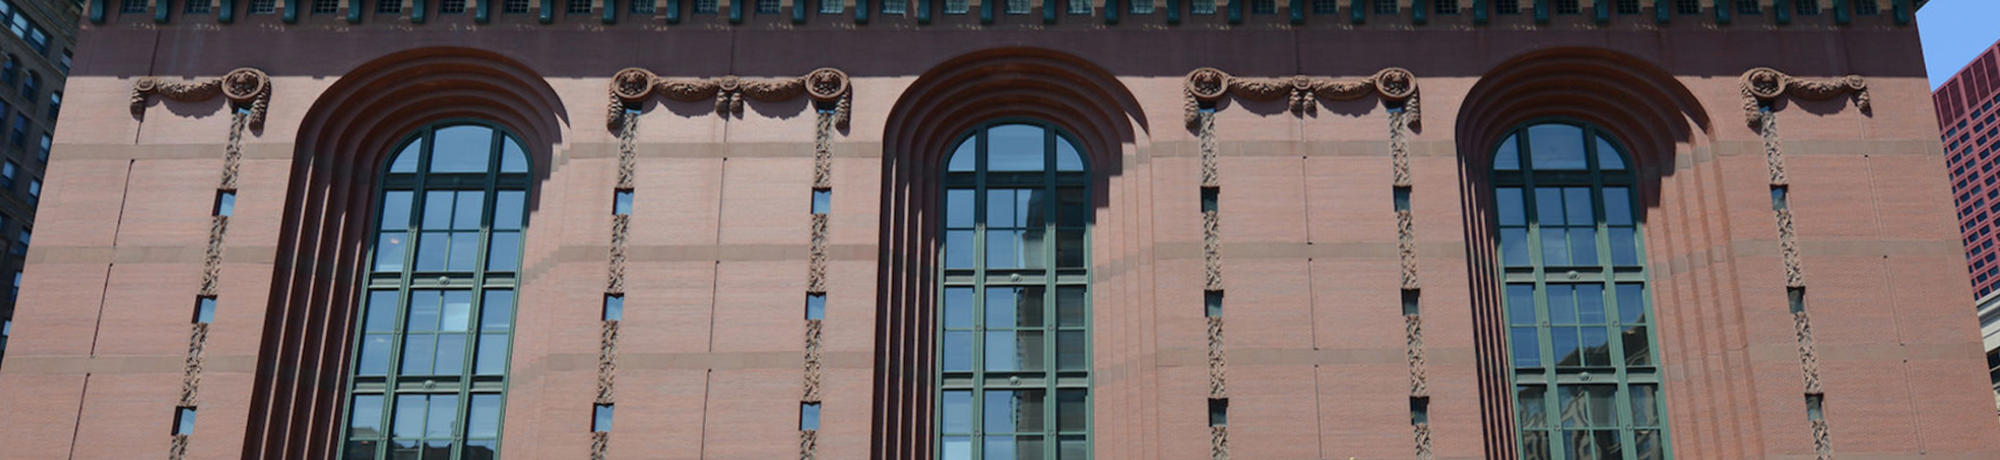 Harold Washington Library Front Elevation